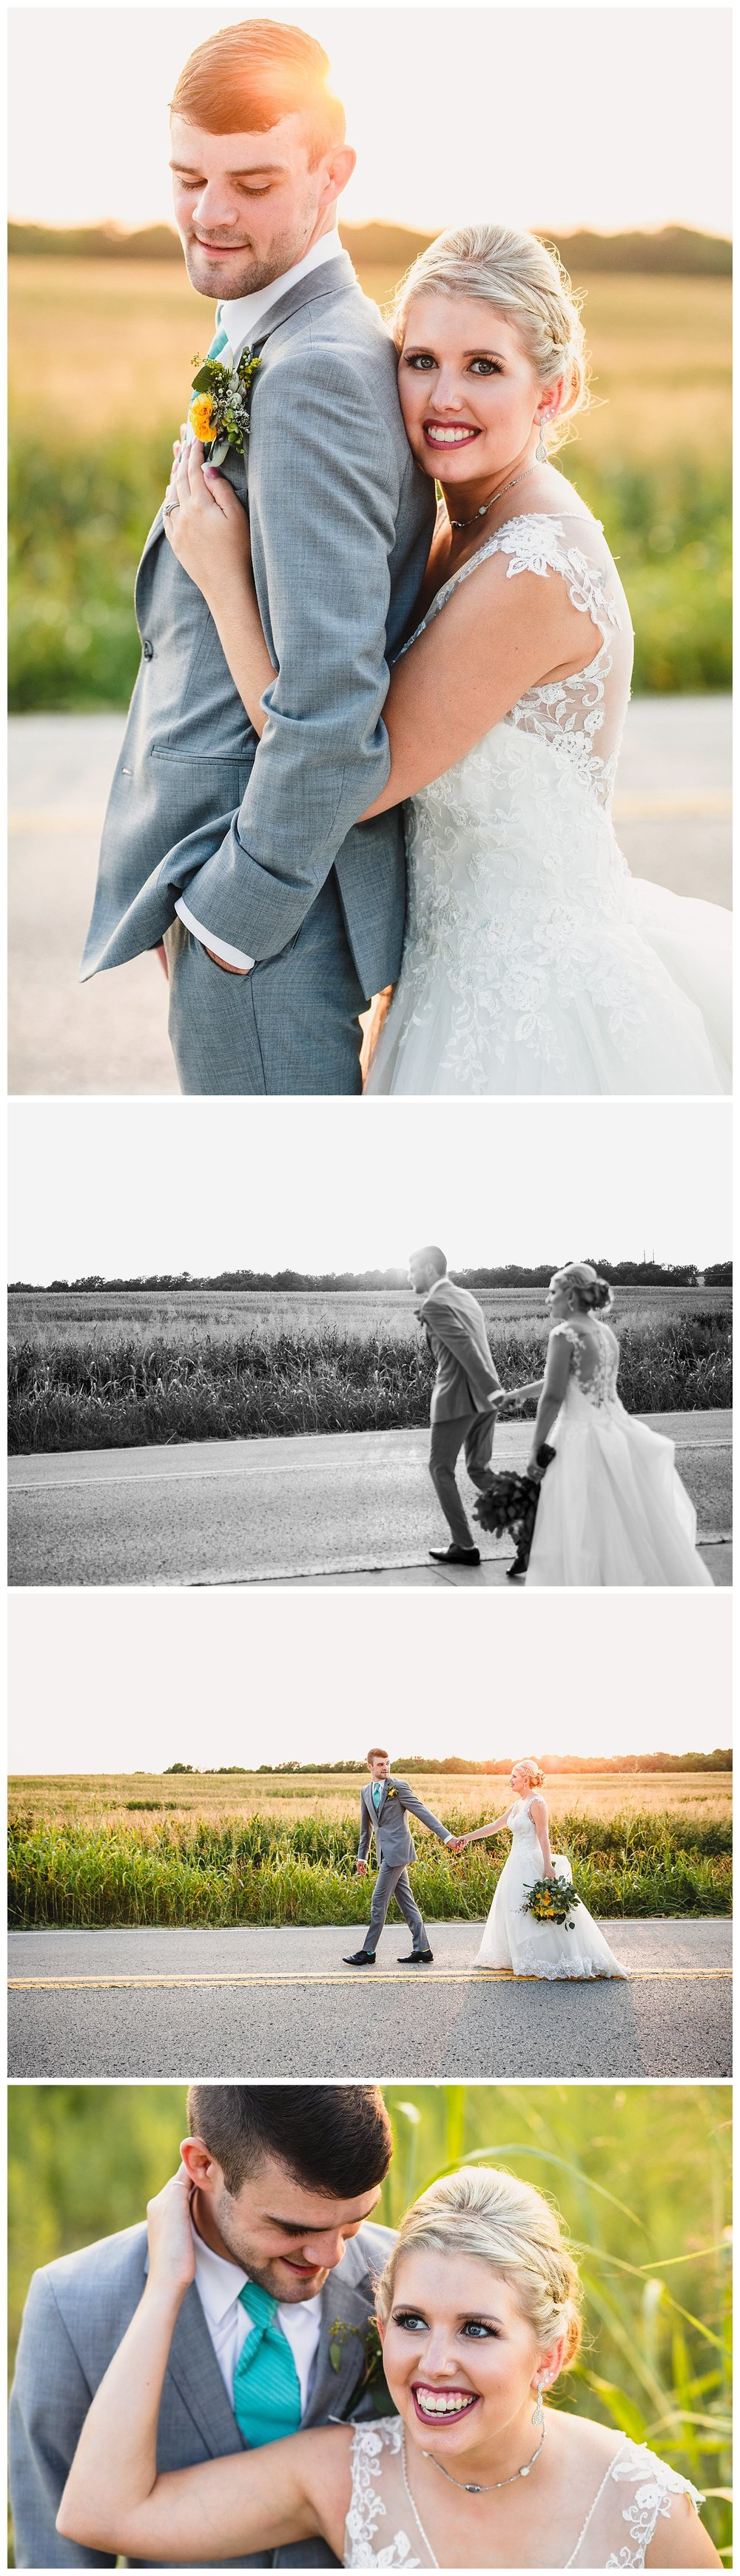 Kansas_City_Wedding_Photographer_Engagement_Kelsey_Diane_Photography_Midwest_Traveling_The_Legacy_At_Green_Hills_Summer_Wedding_0939.jpg